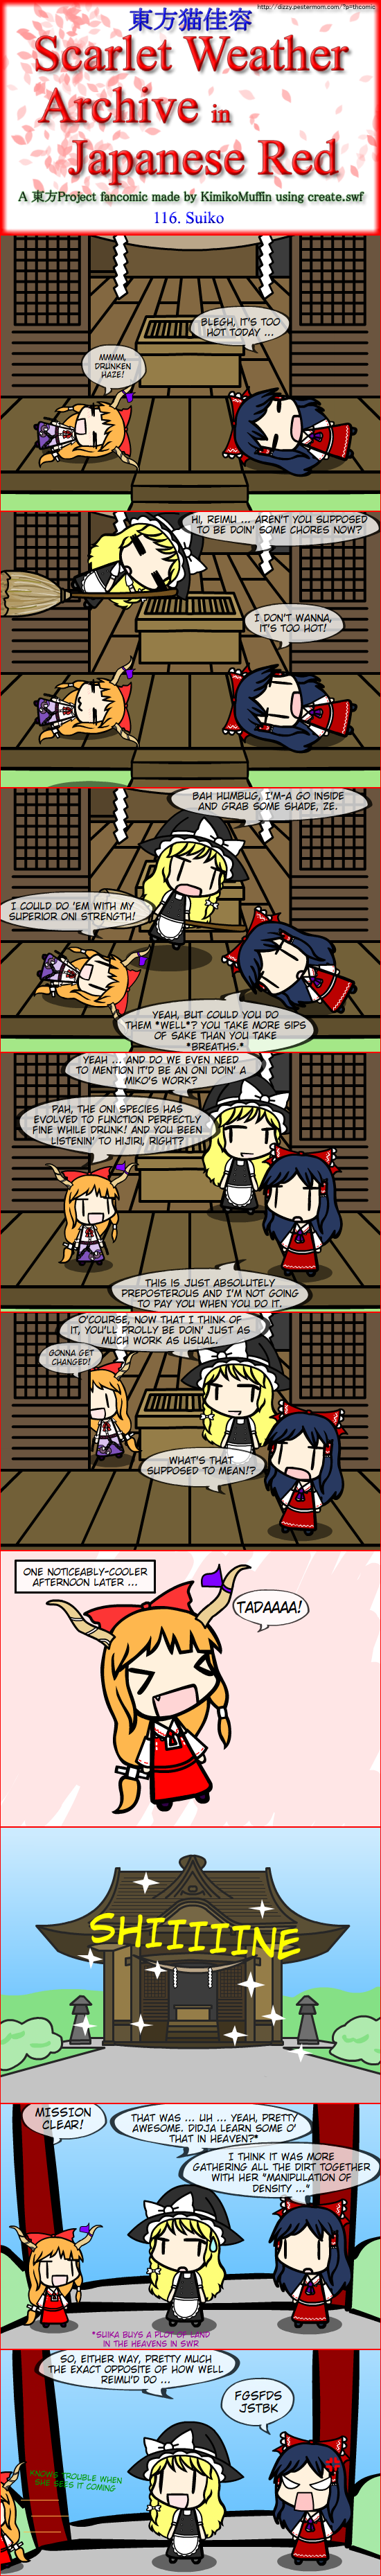 Touhou Nekokayou: Scarlet Weather Archive in Japanese Red #116